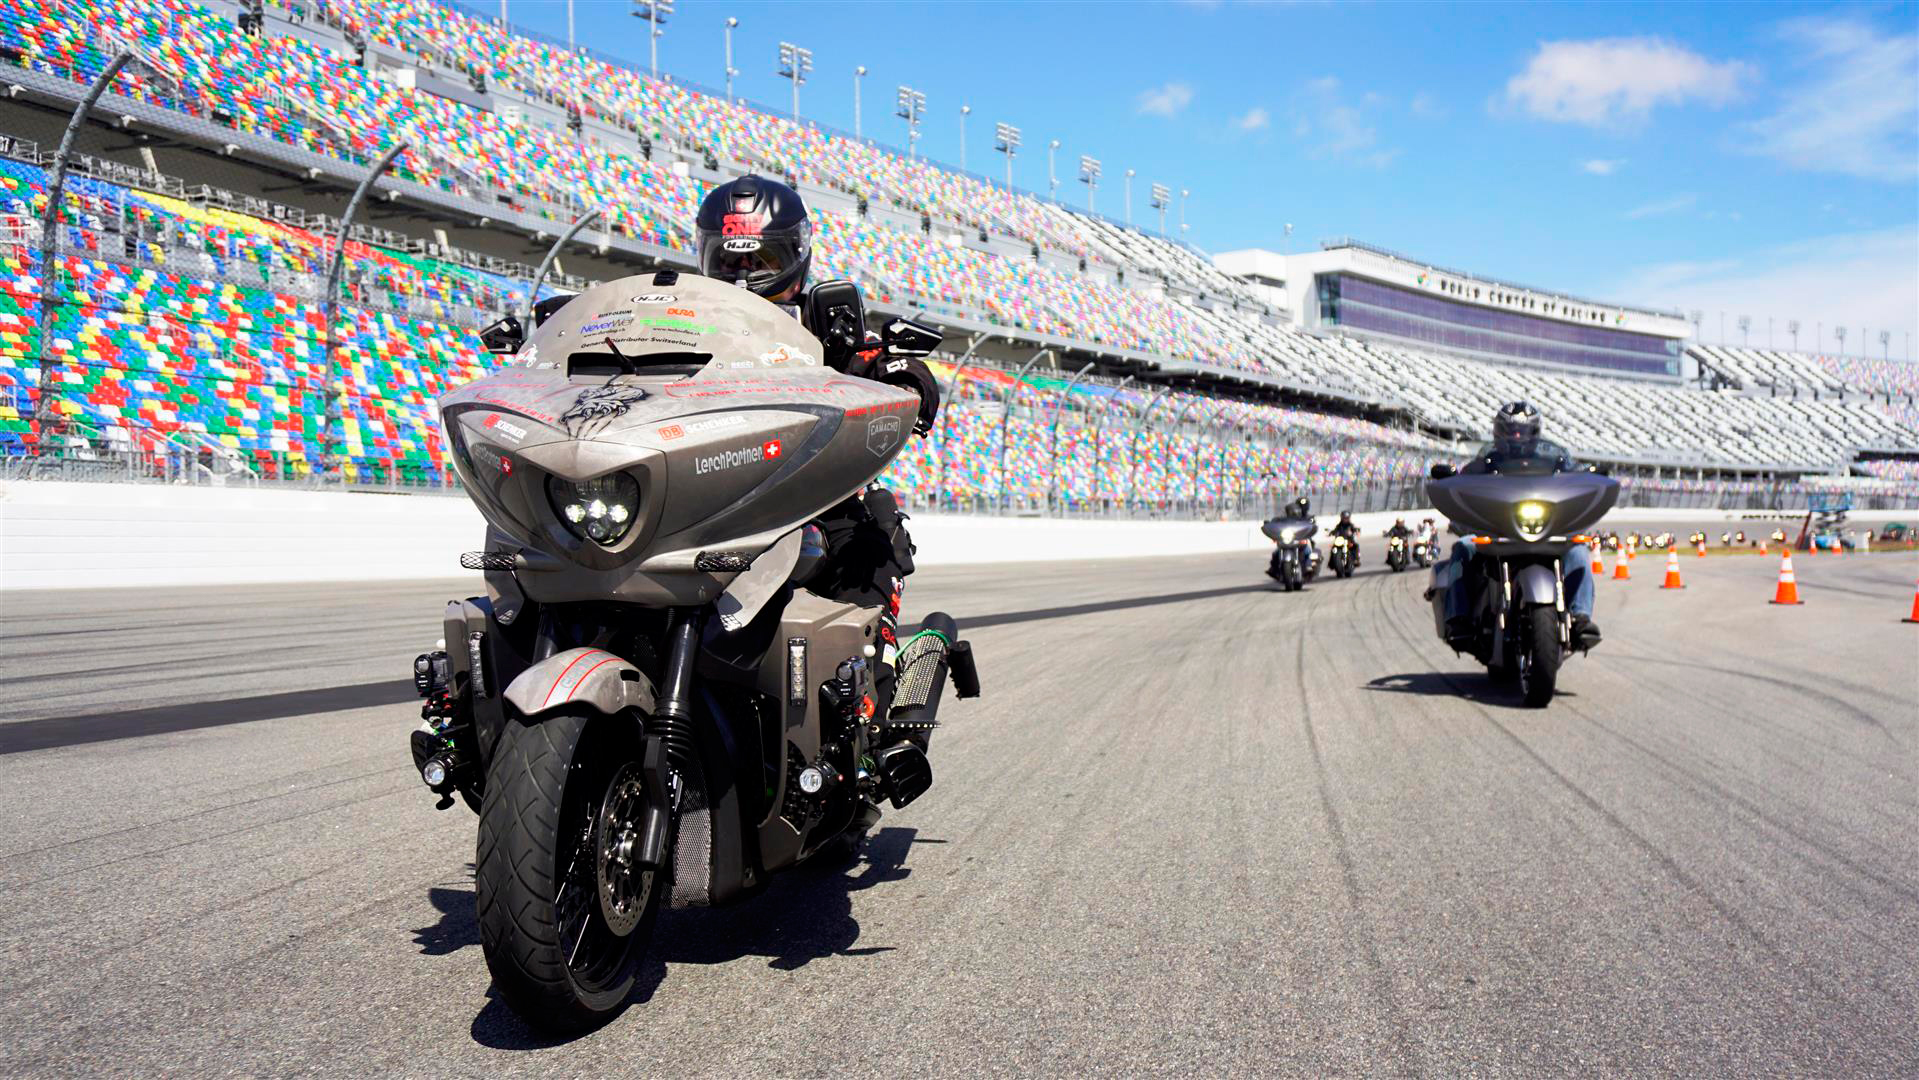 160711-victory-motorcycles-grizzly-daytona-international-speedway-departure